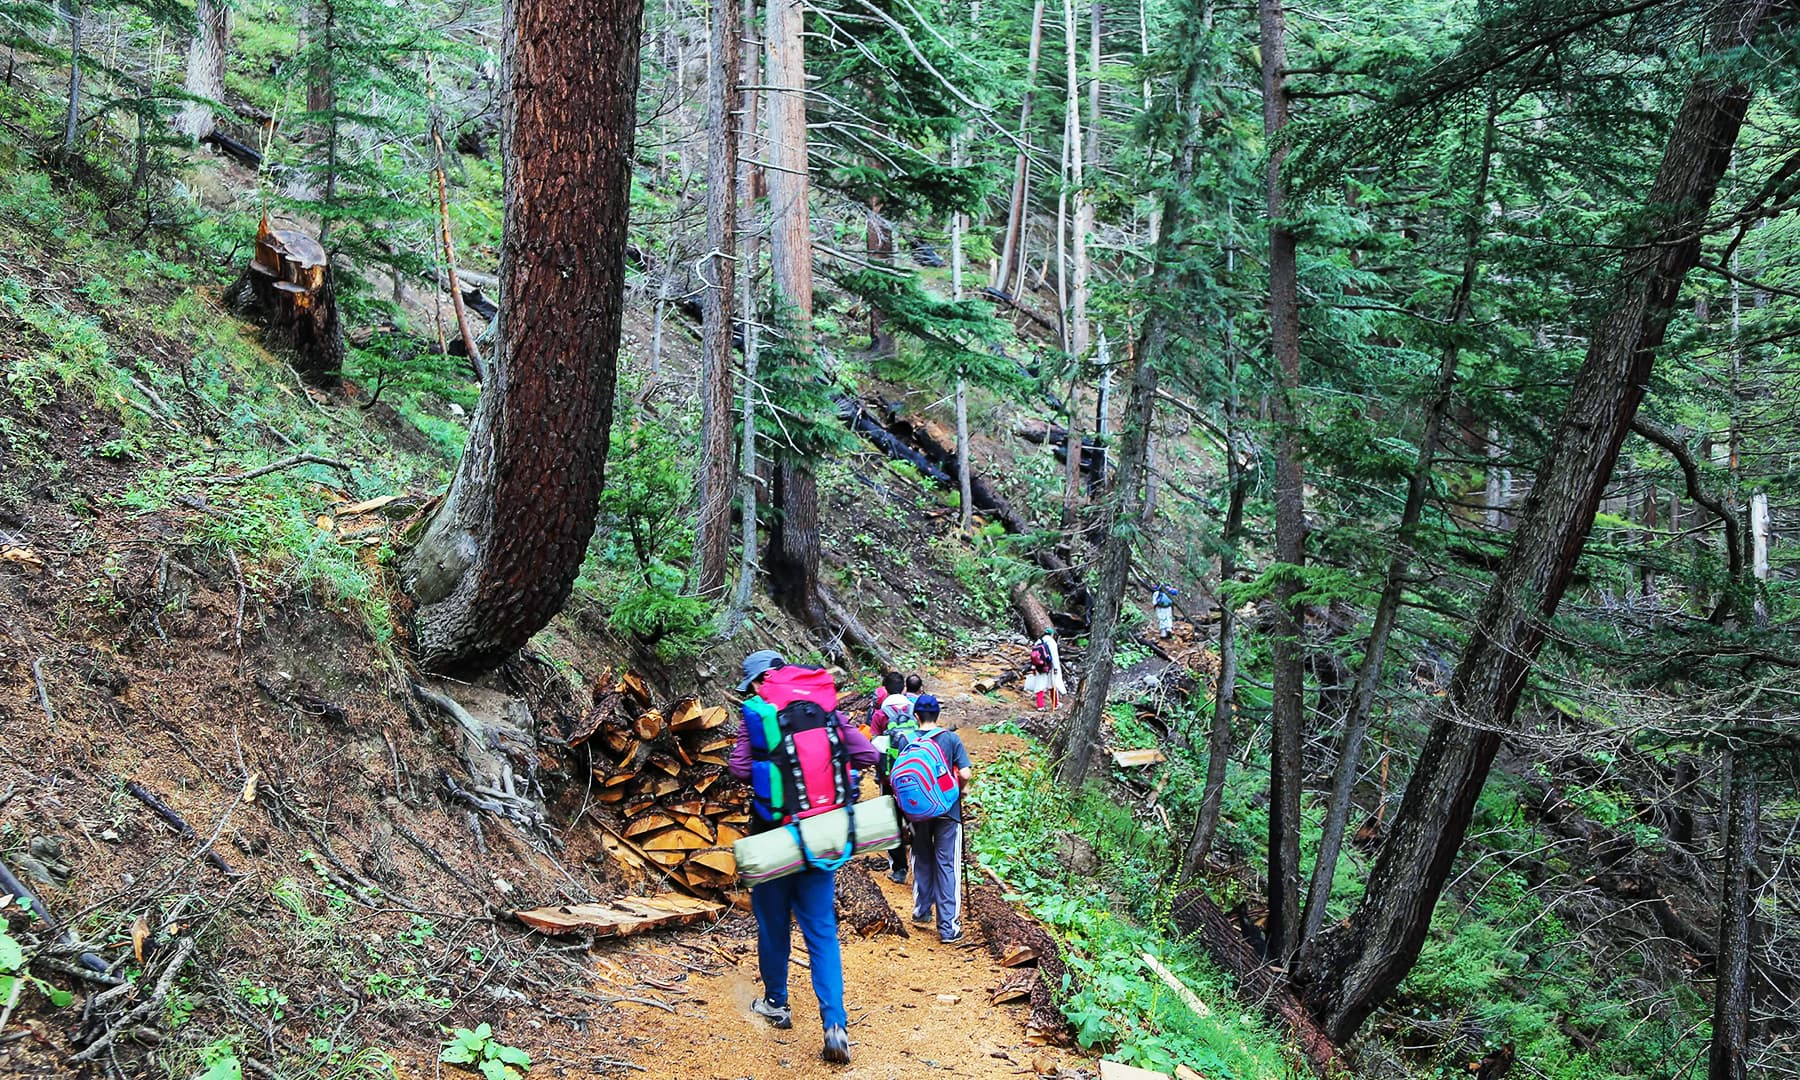 Trekkers and tourists pass through Anakar forest towards Mastij Lake.